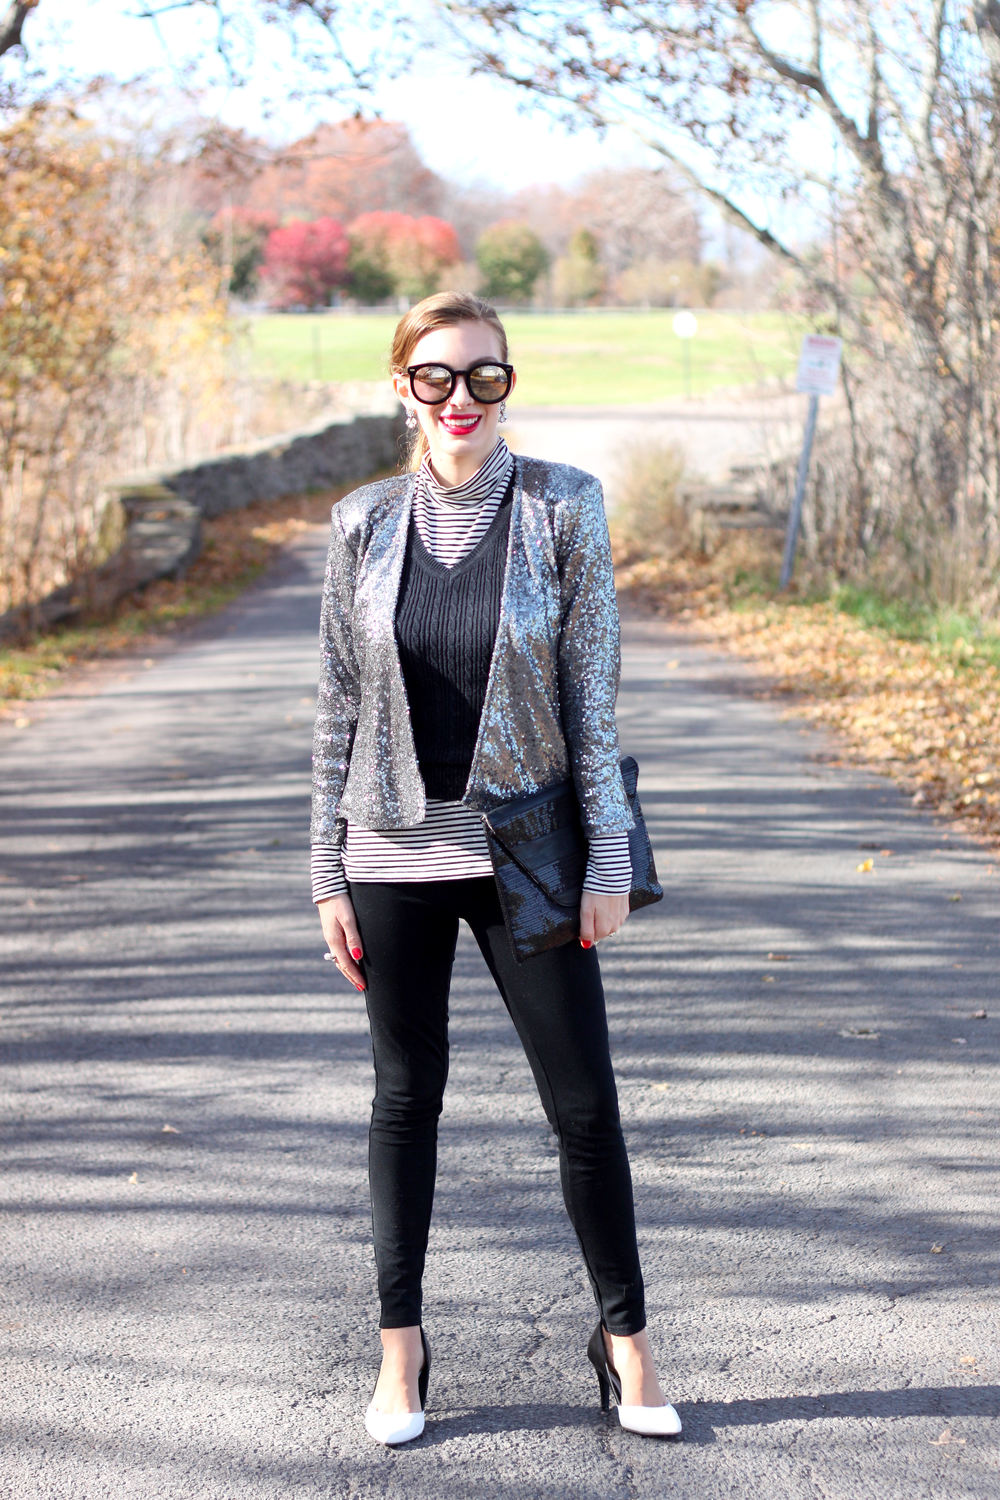 Sequin Jacket-Enchanting Elegance